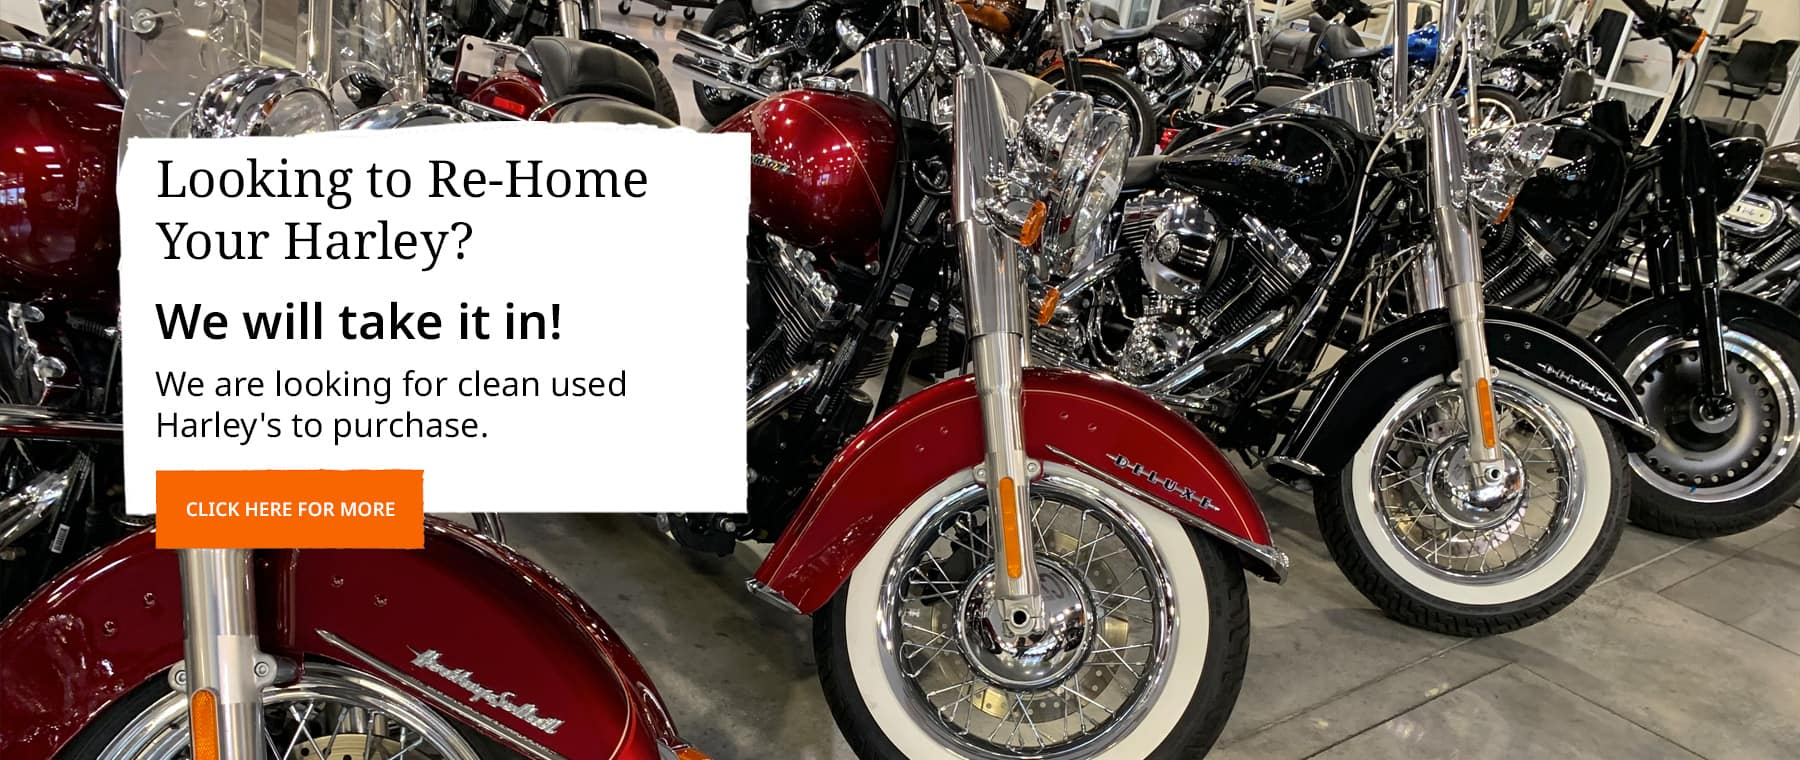 Rehome your harley